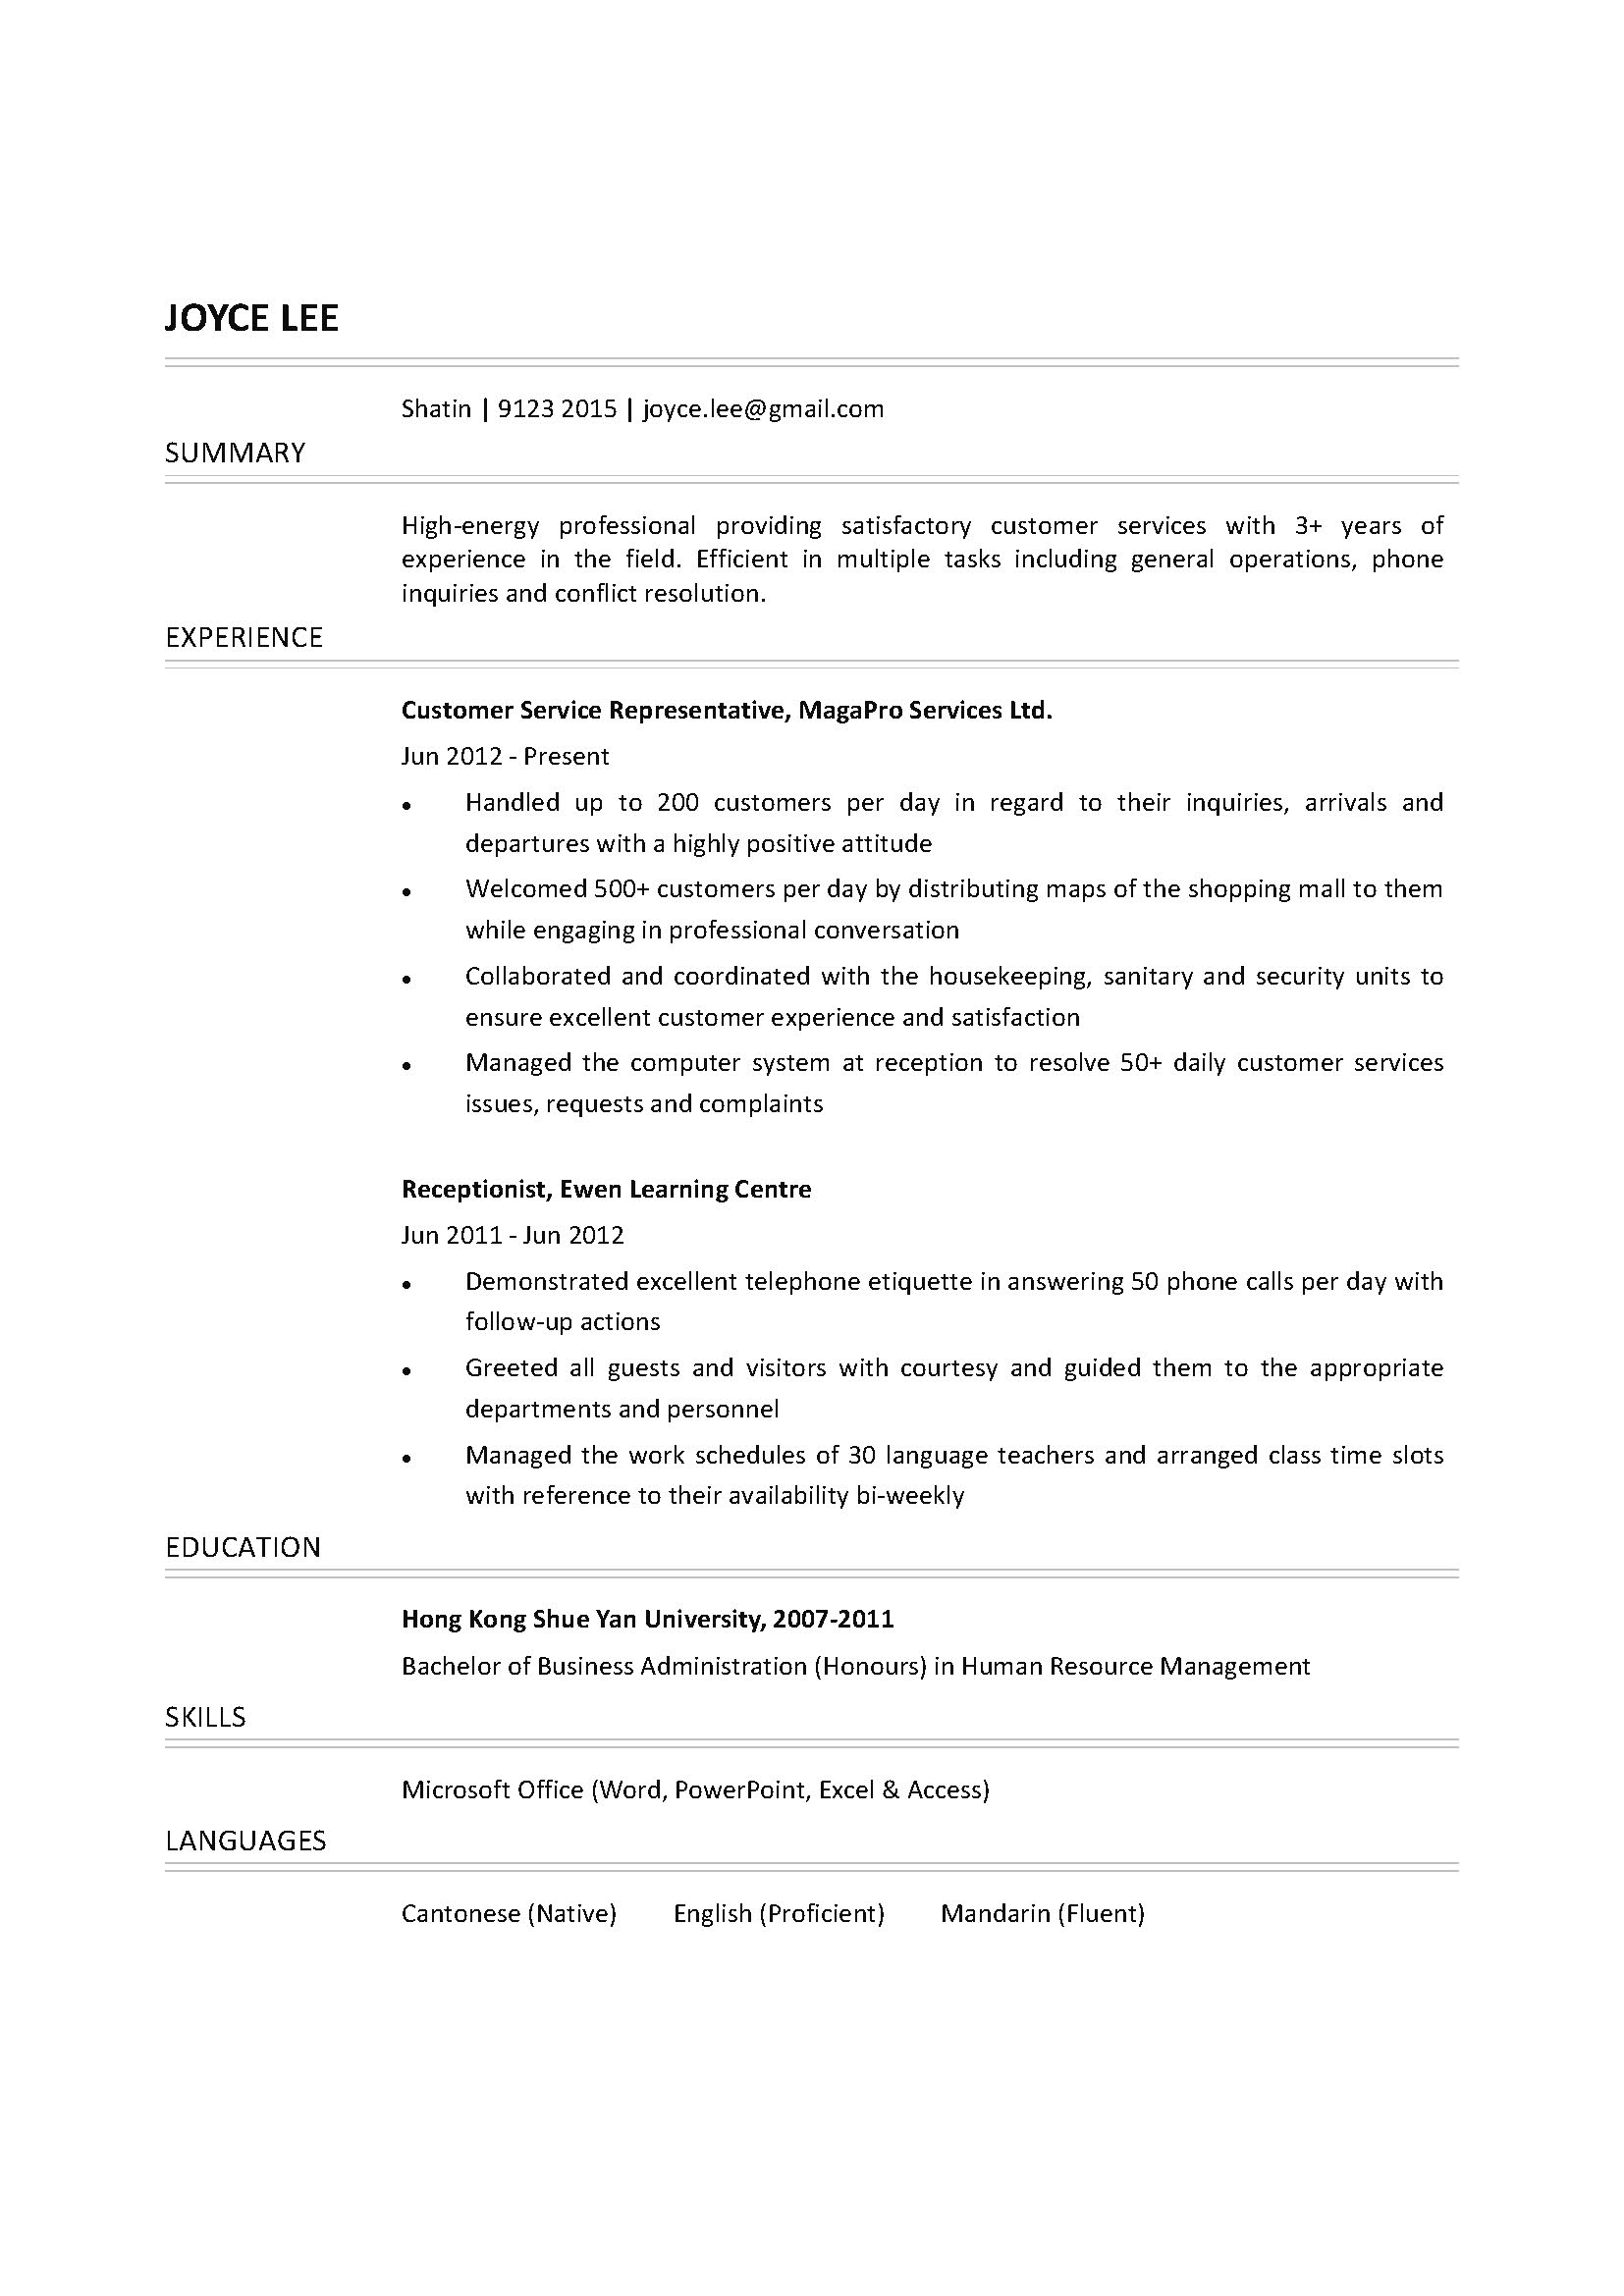 Resume Template For Customer Service Representative Customer Service Representative Cv Ctgoodjobs Powered By